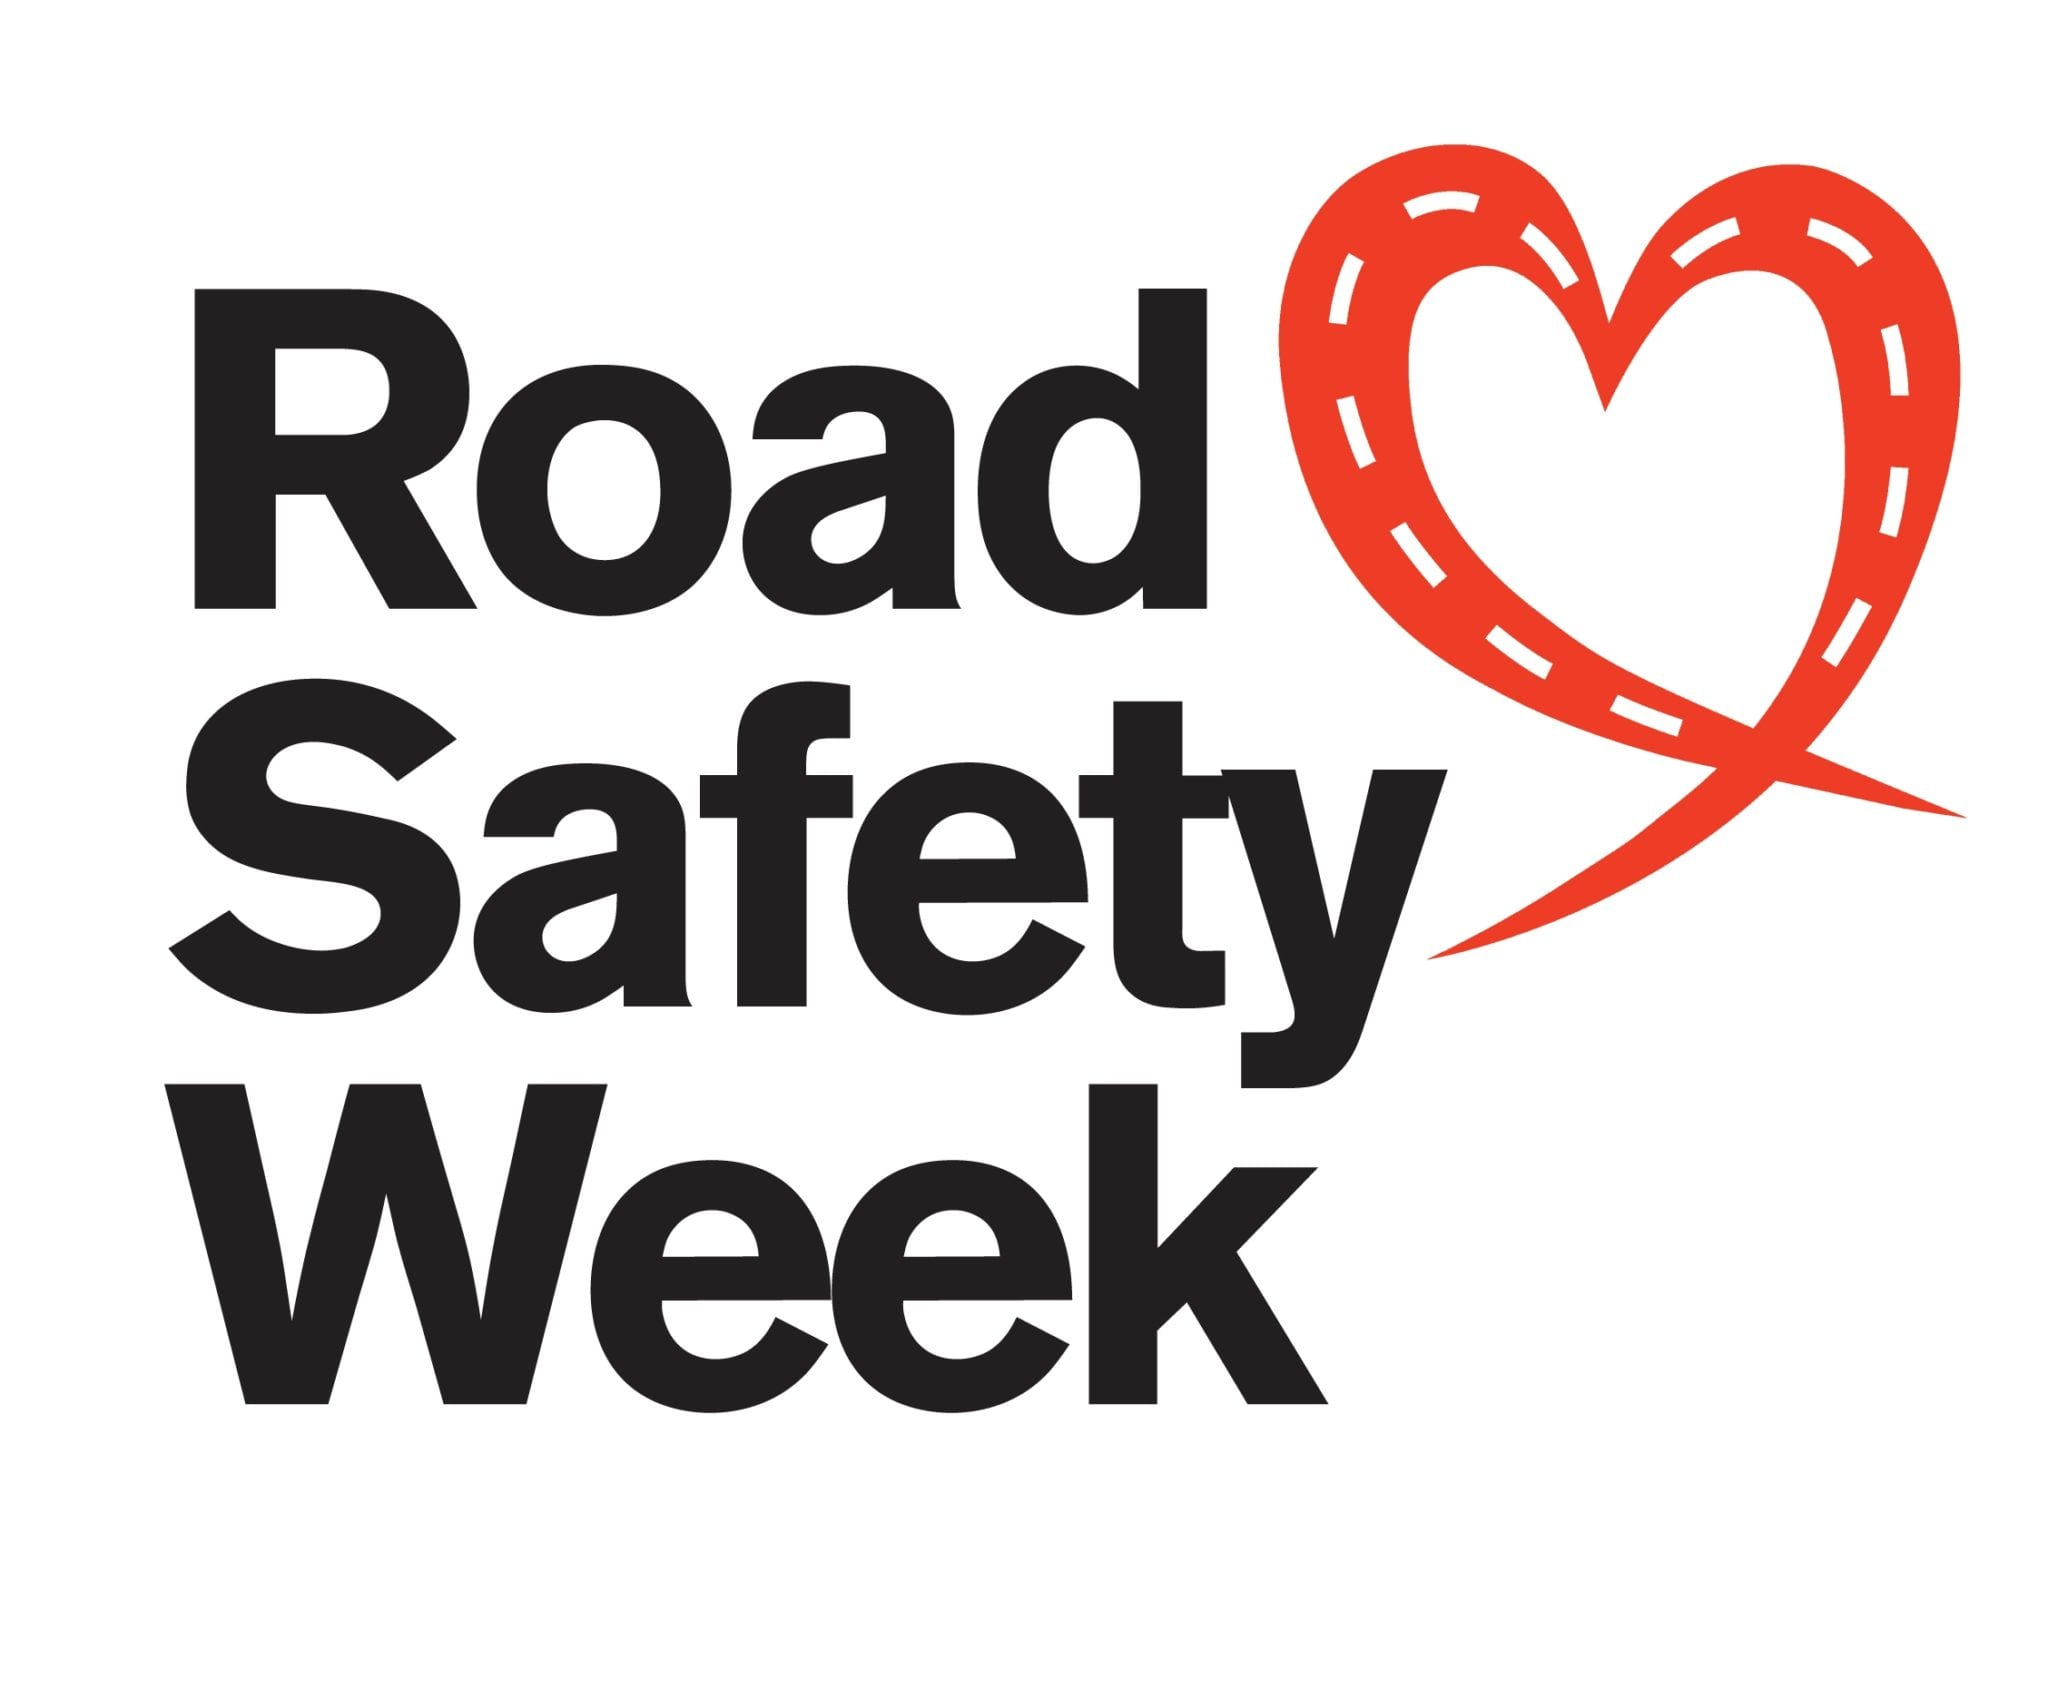 Road Safety Week In India 2018 11th January To 17th